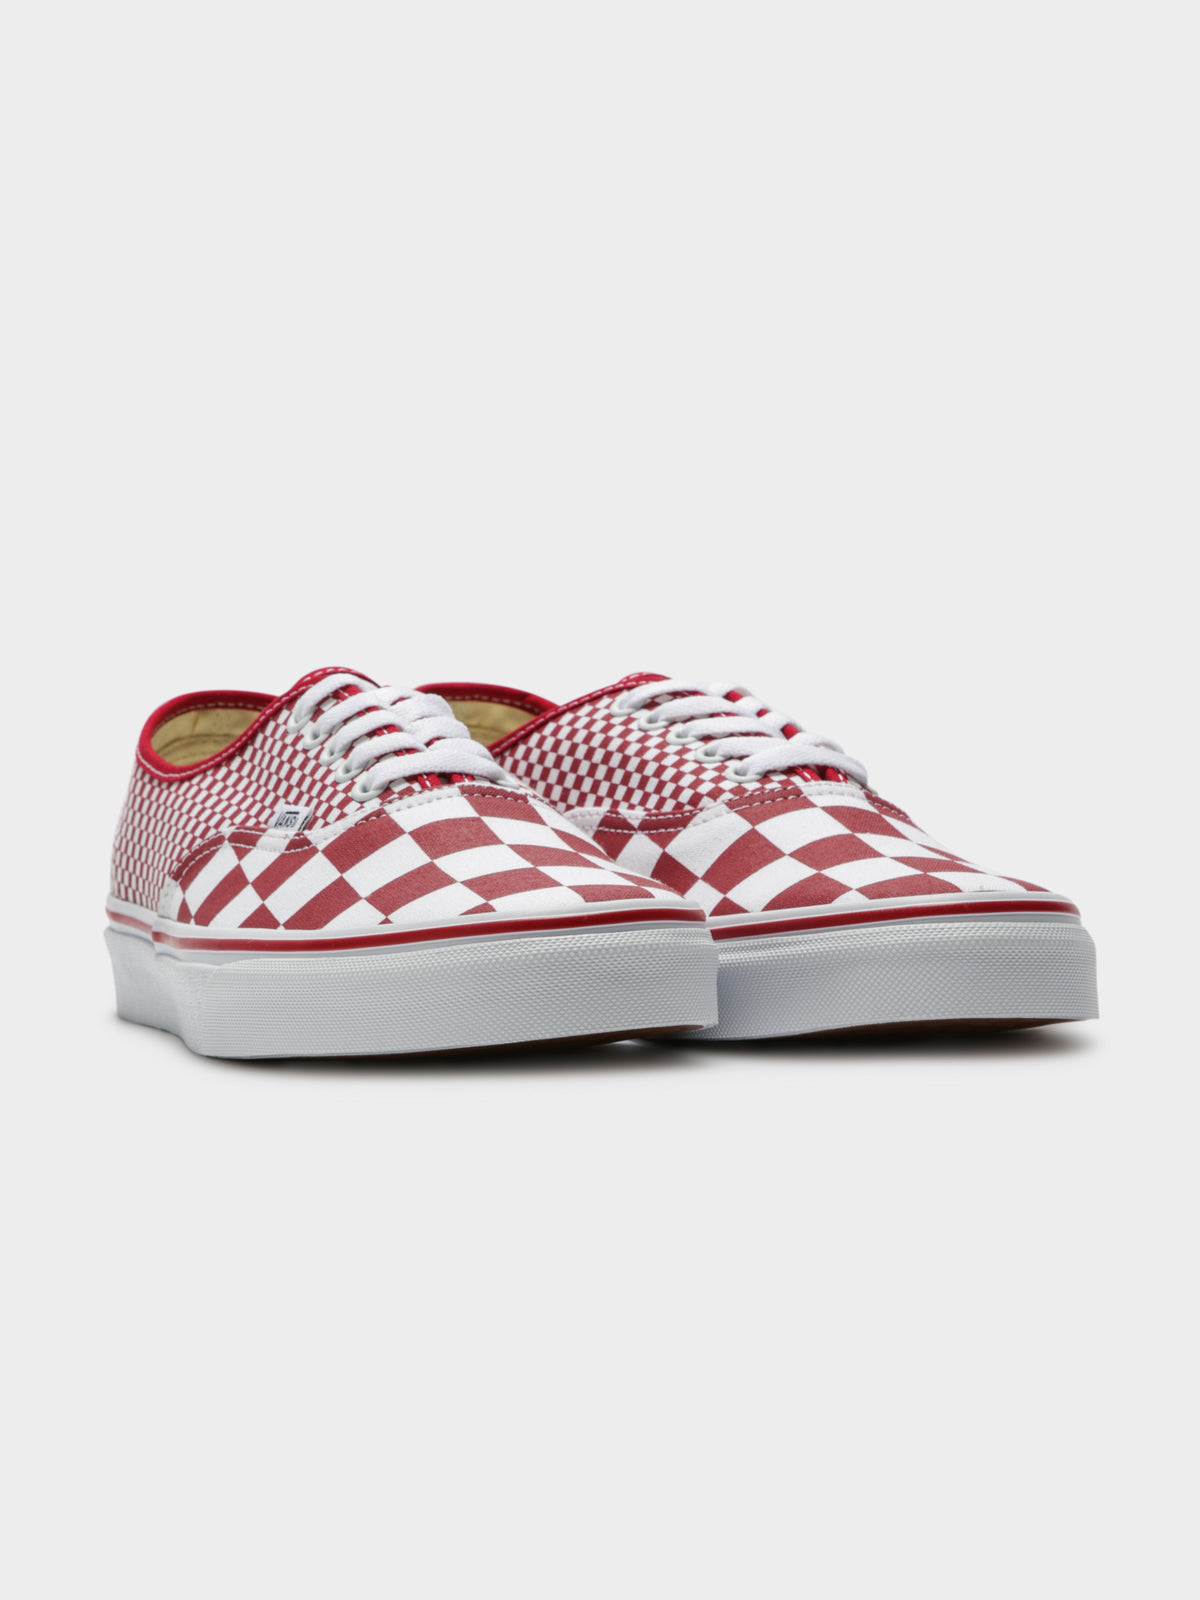 Mens Authentic Mix Checker Sneakers in Chill Pepper Red & True White